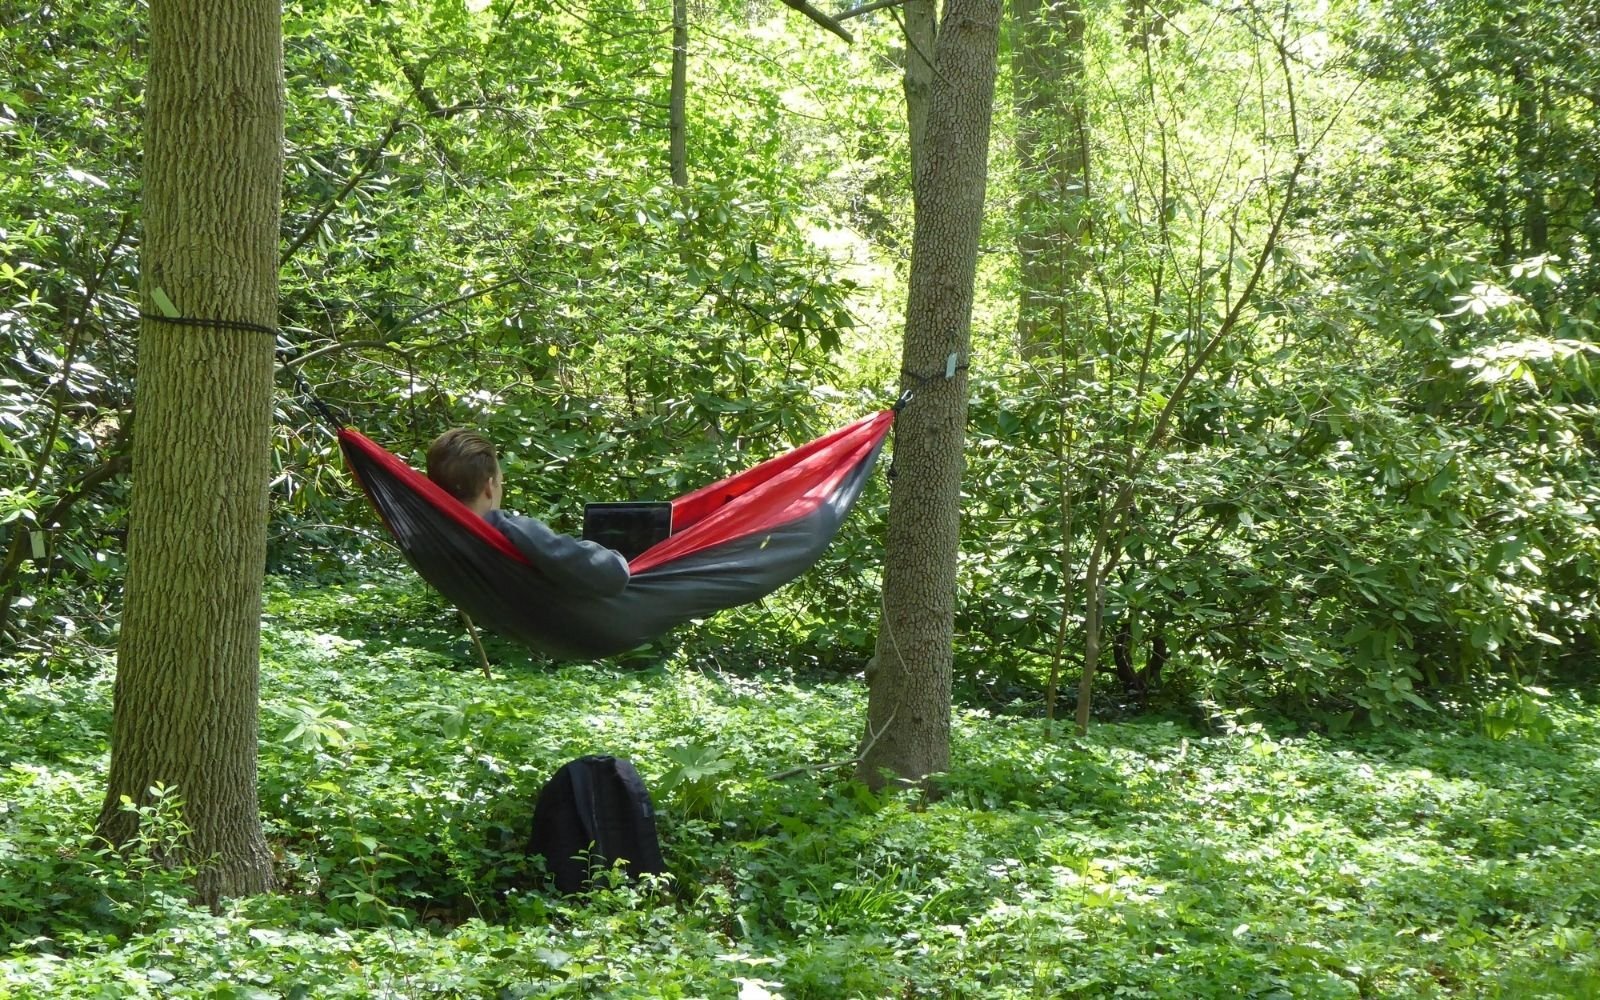 A red hammock strung between two tall trees in the woods